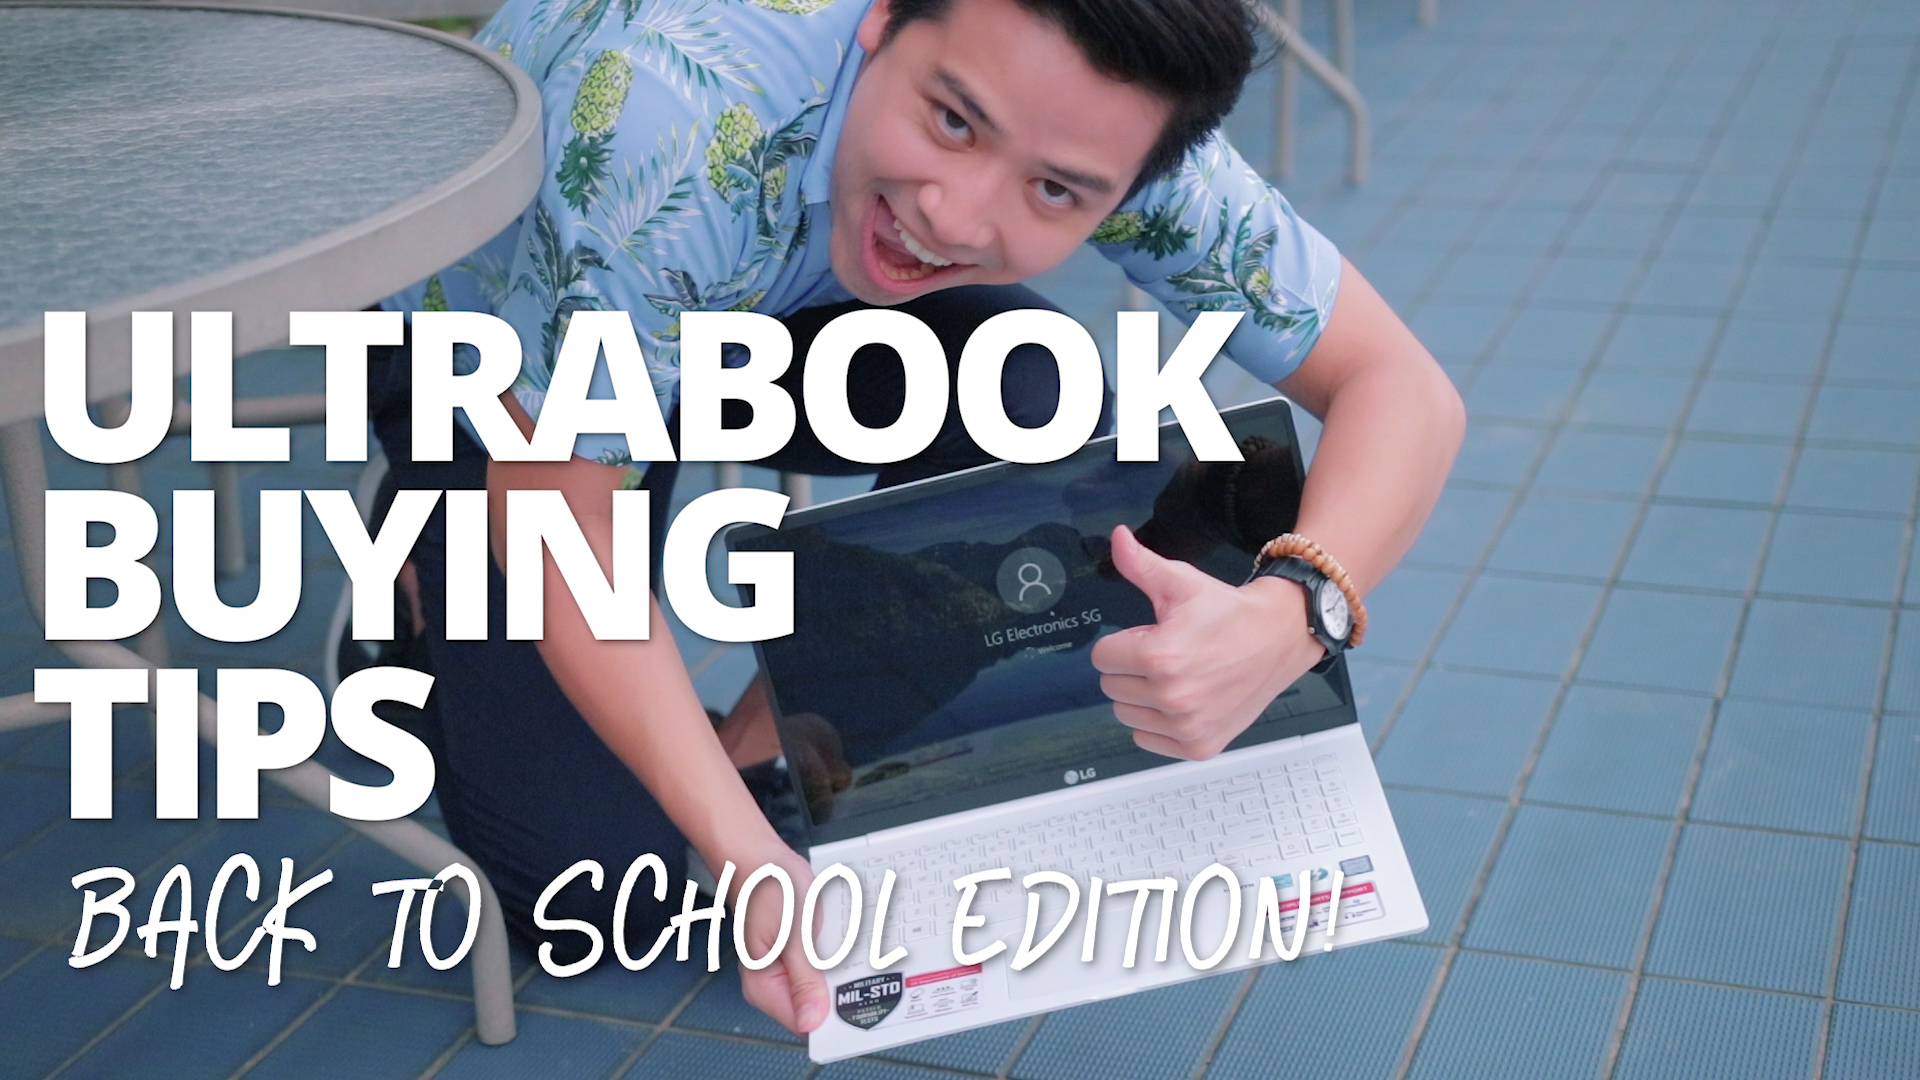 #HWZtechmeup: Ultrabook buying tips